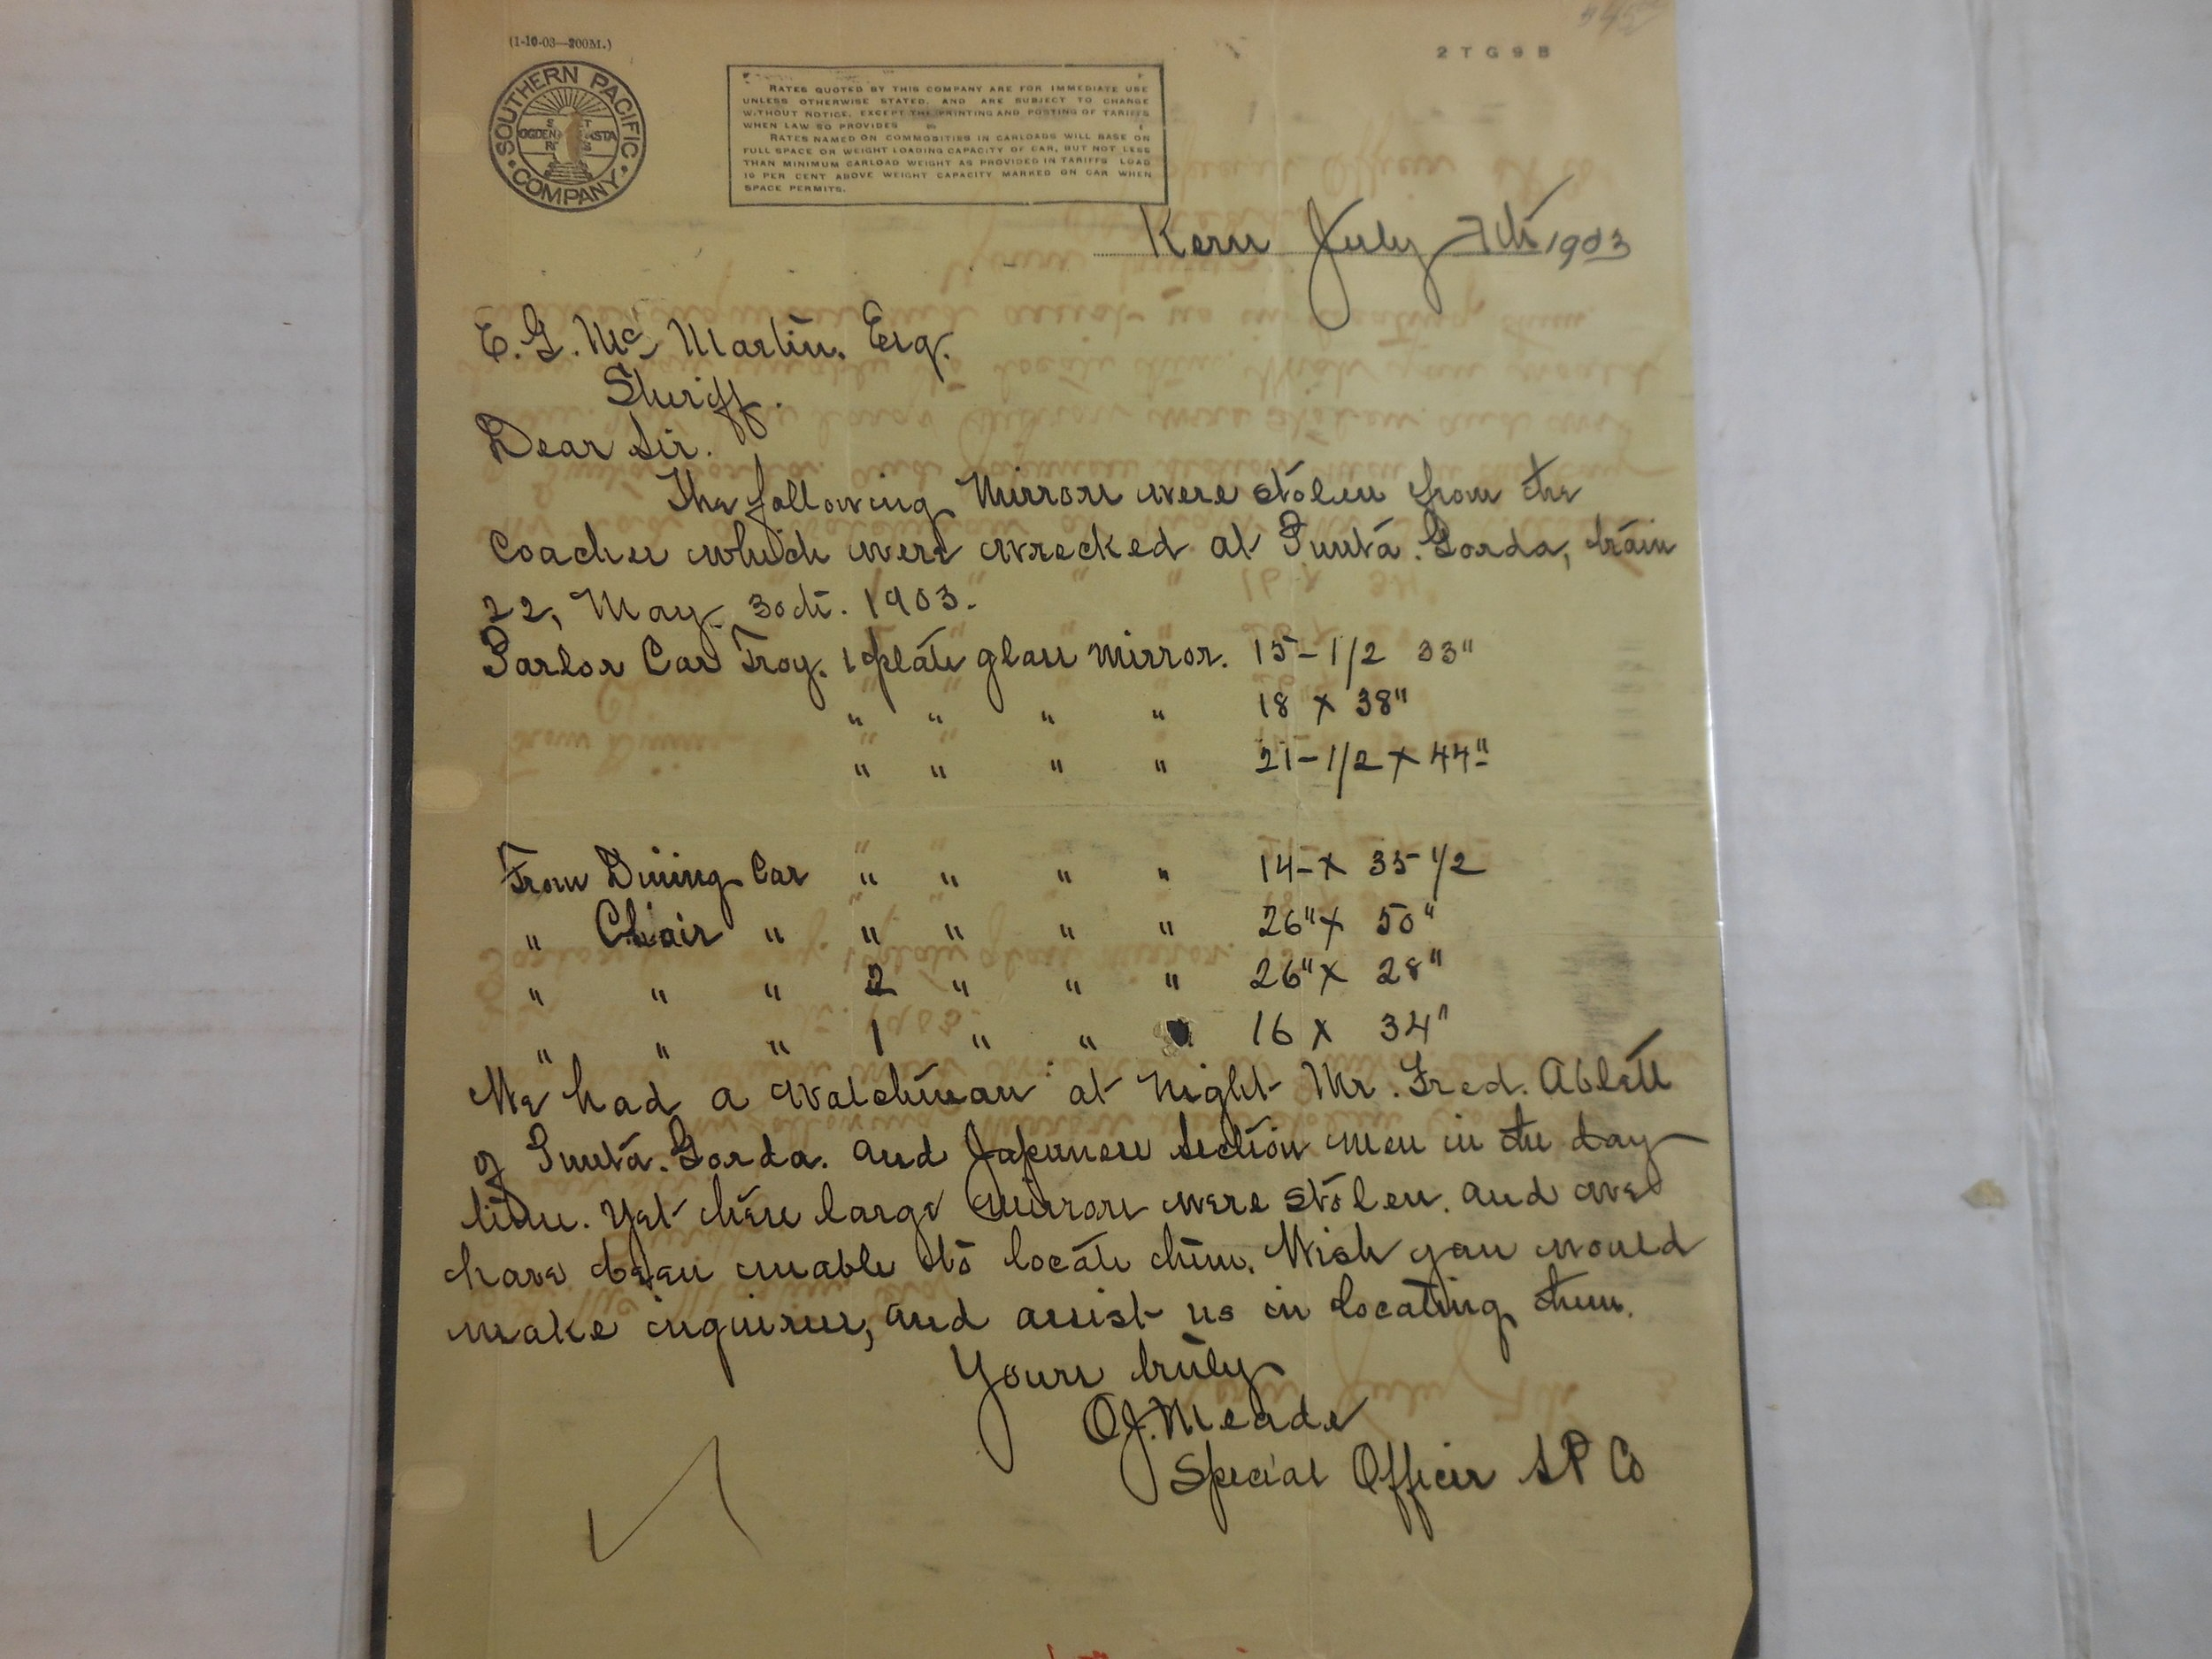 Letter shared by George Marshino.